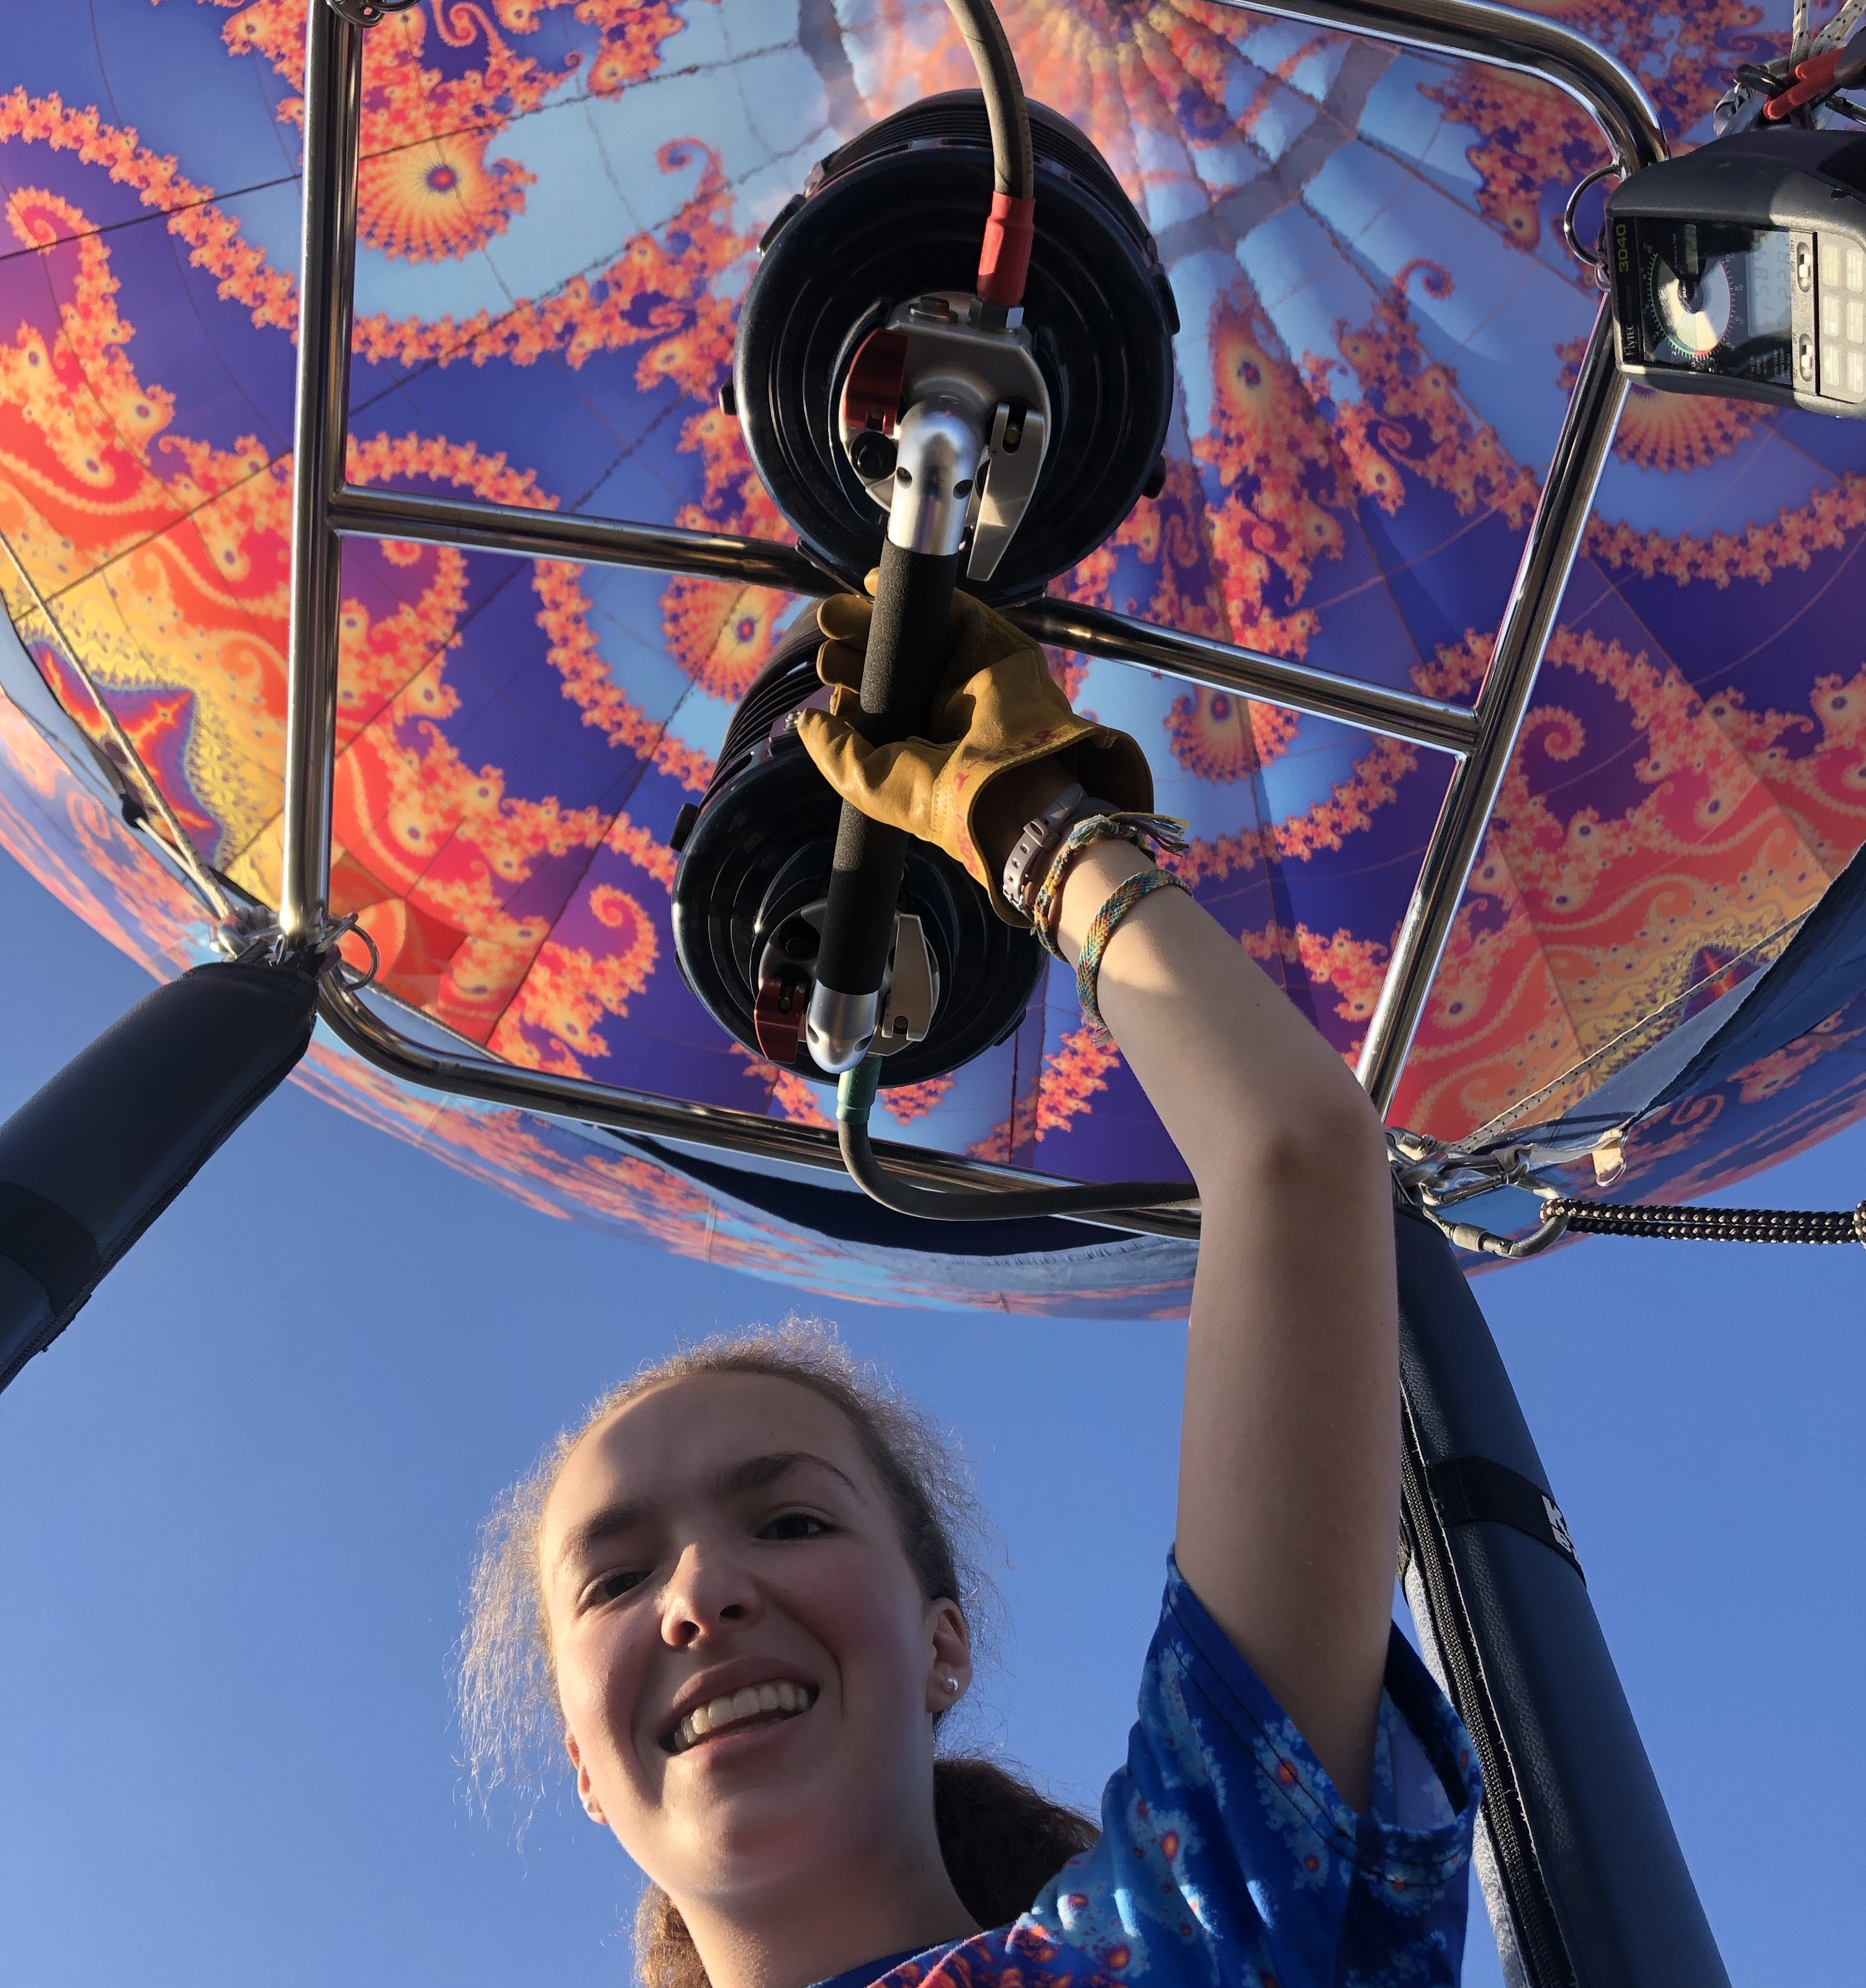 Caption: ulia Wolfe, 15 year old hot air balloon pilot in training , Credit: Dr. Jonathan Wolfe